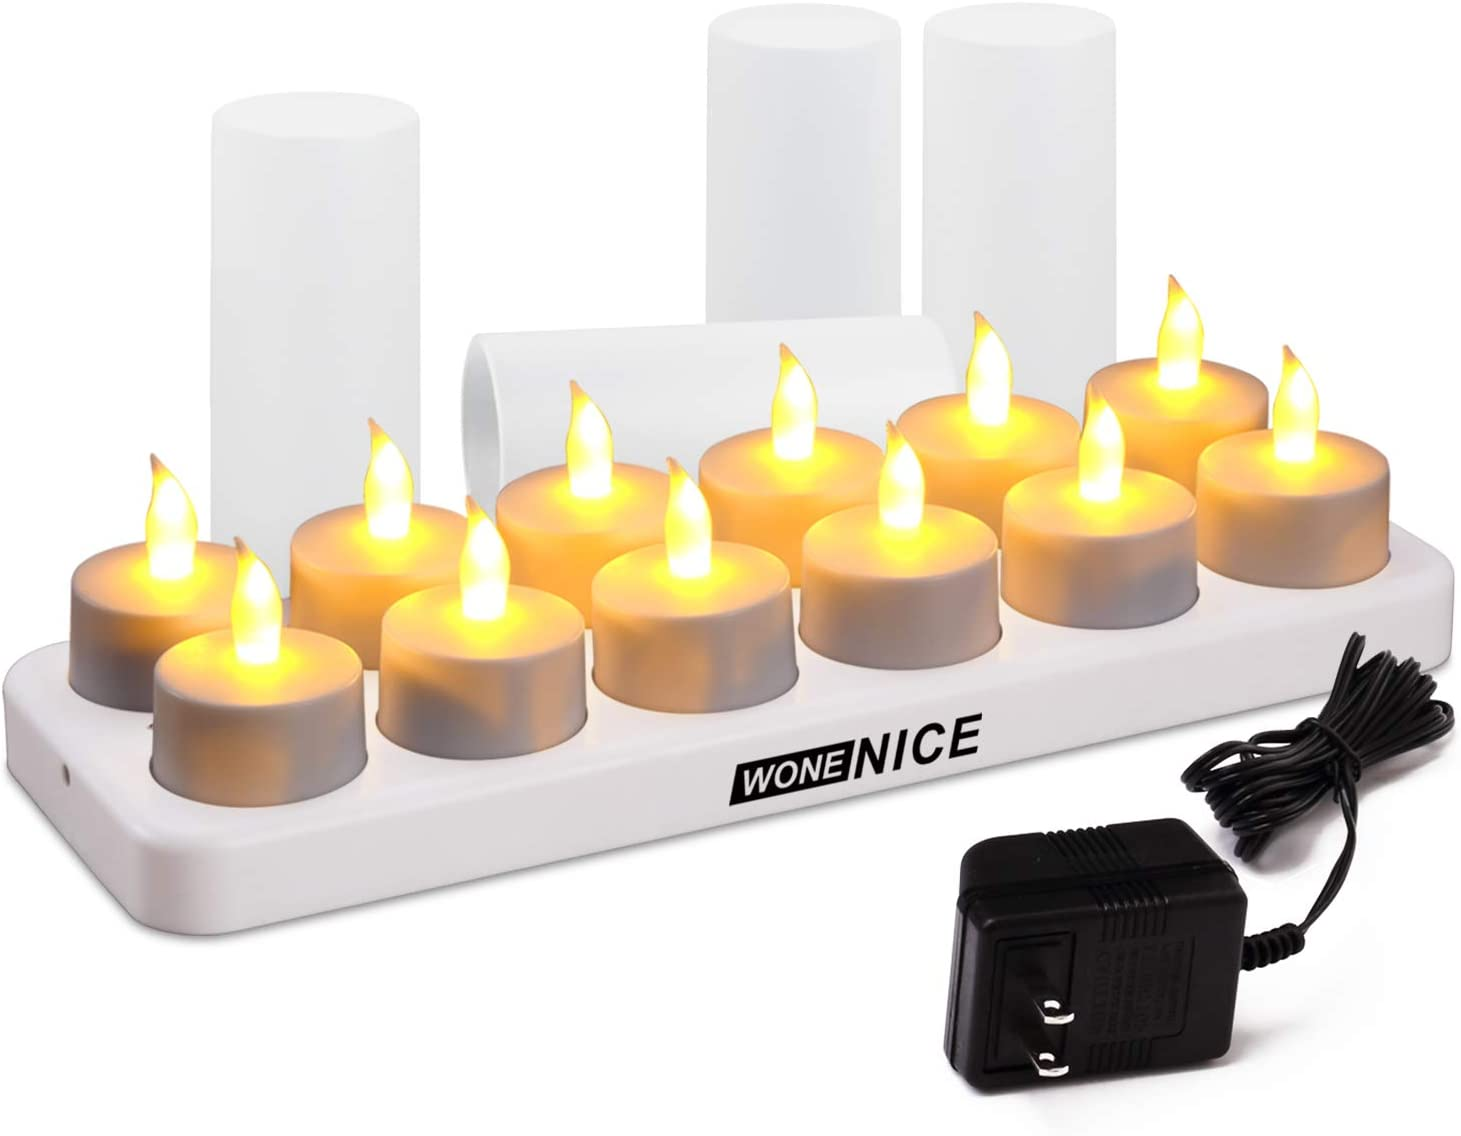 Amazon Com Wonenice Rechargeable Tea Lights Flickering Tealight Candles With Charging Base And Ac Adapter Like Real Candles No Batteries Necessary Romantic For Parties Events Weddings Living Room And Bath Home Kitchen